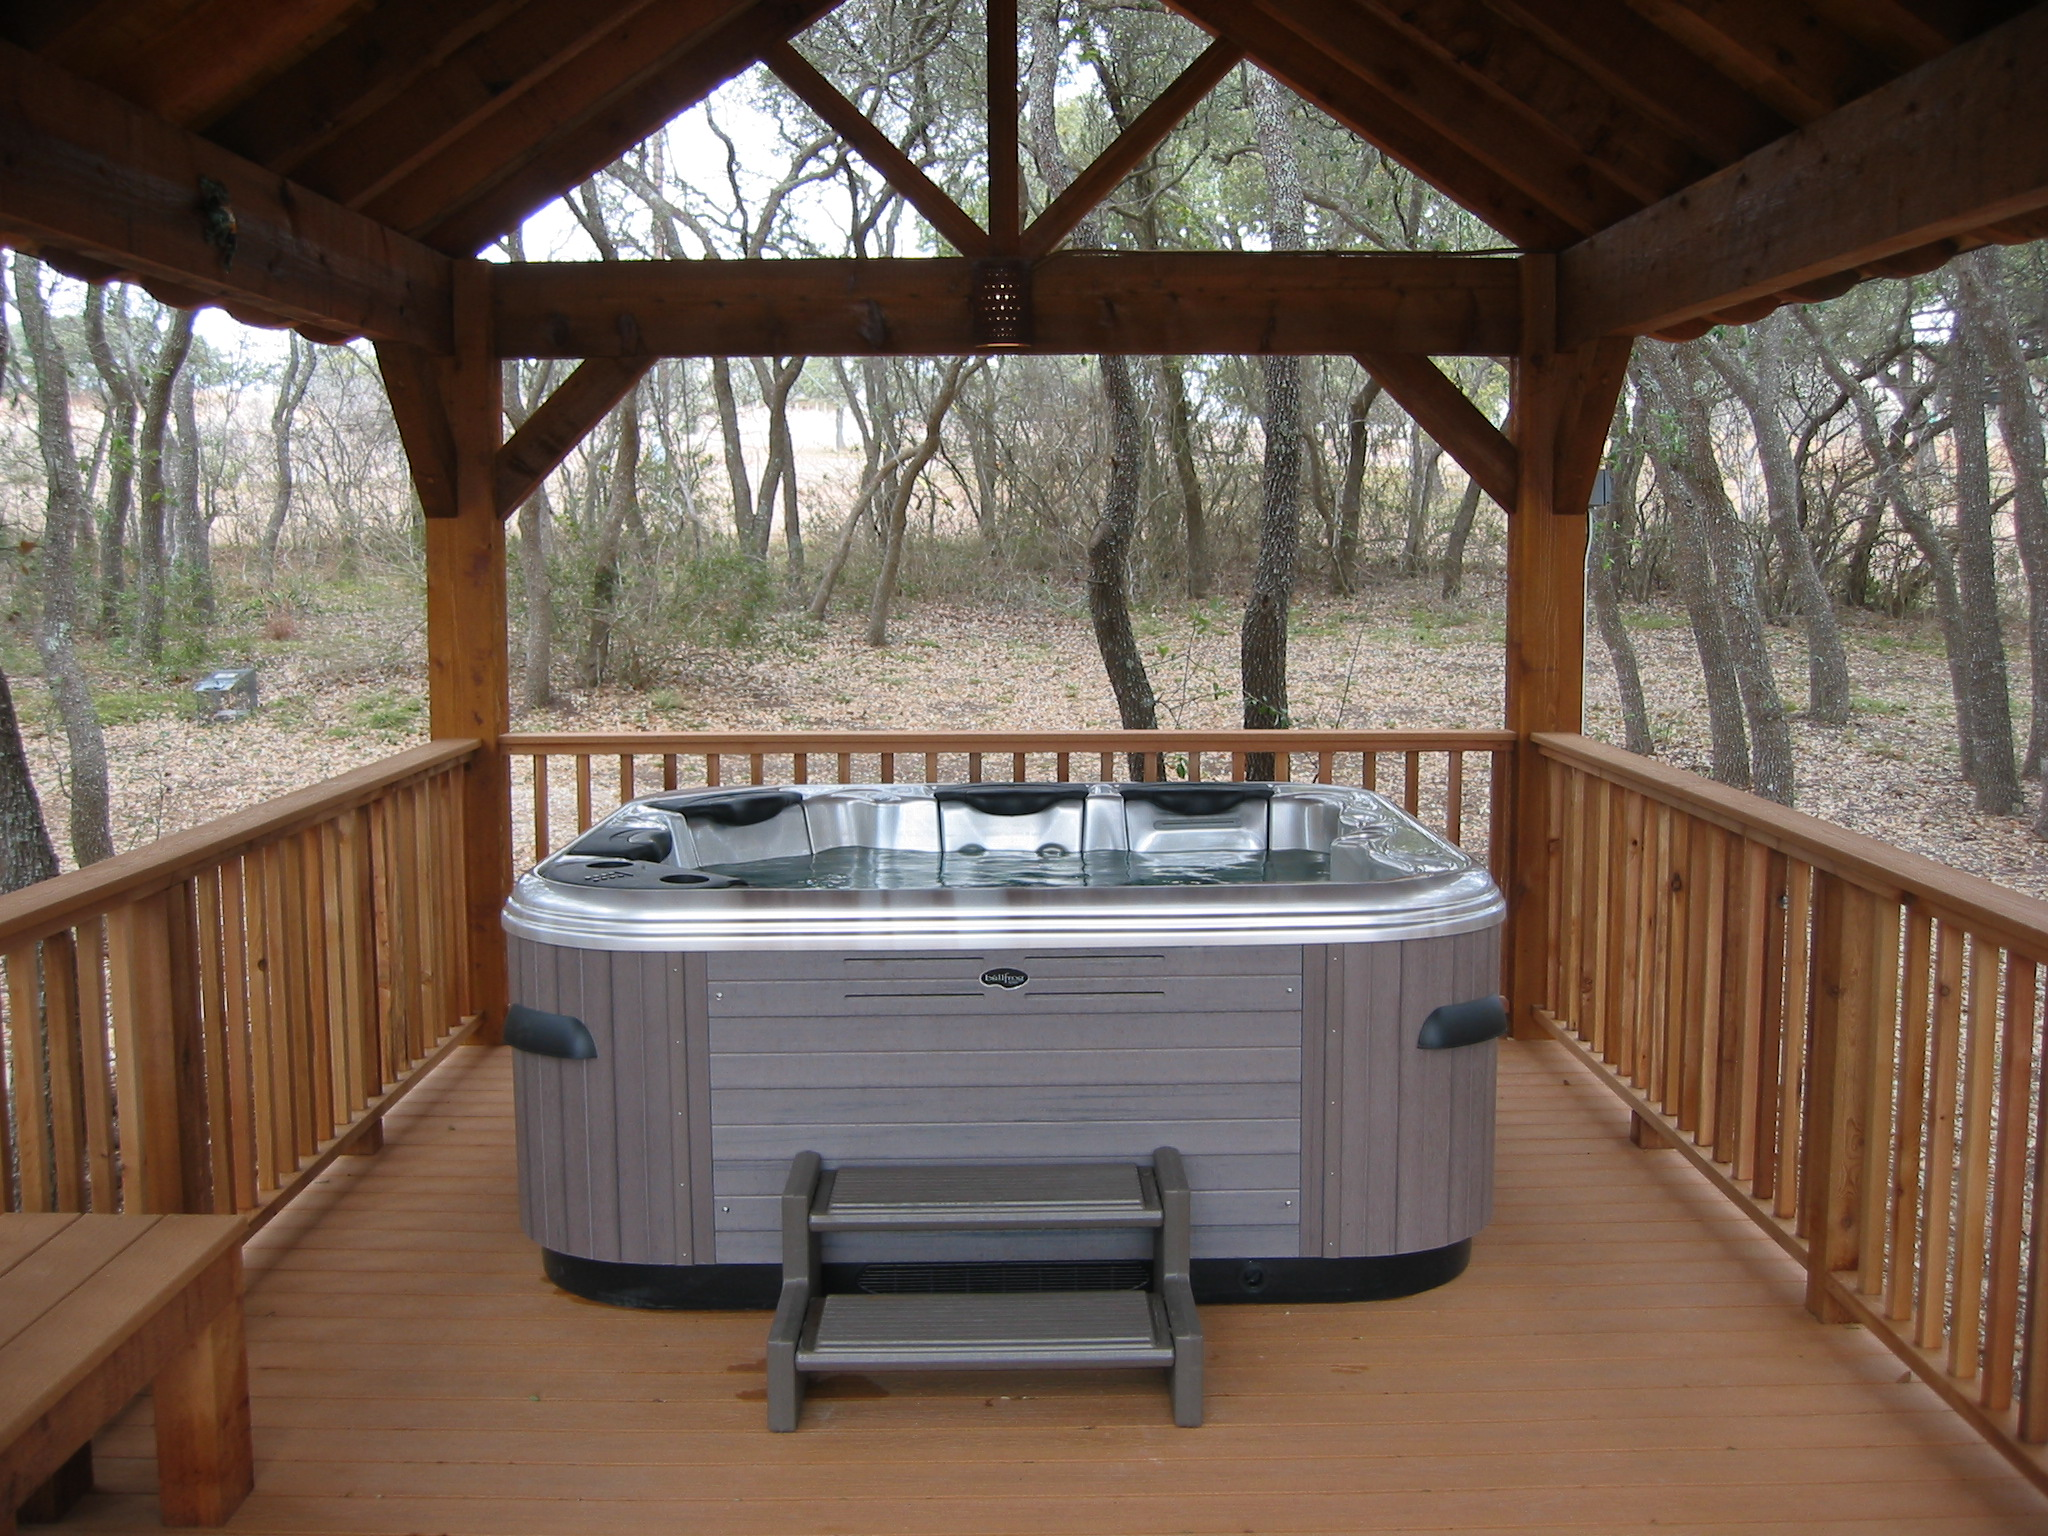 tub san are hot obispo bullfrog you the for only tubs luis designed spas just